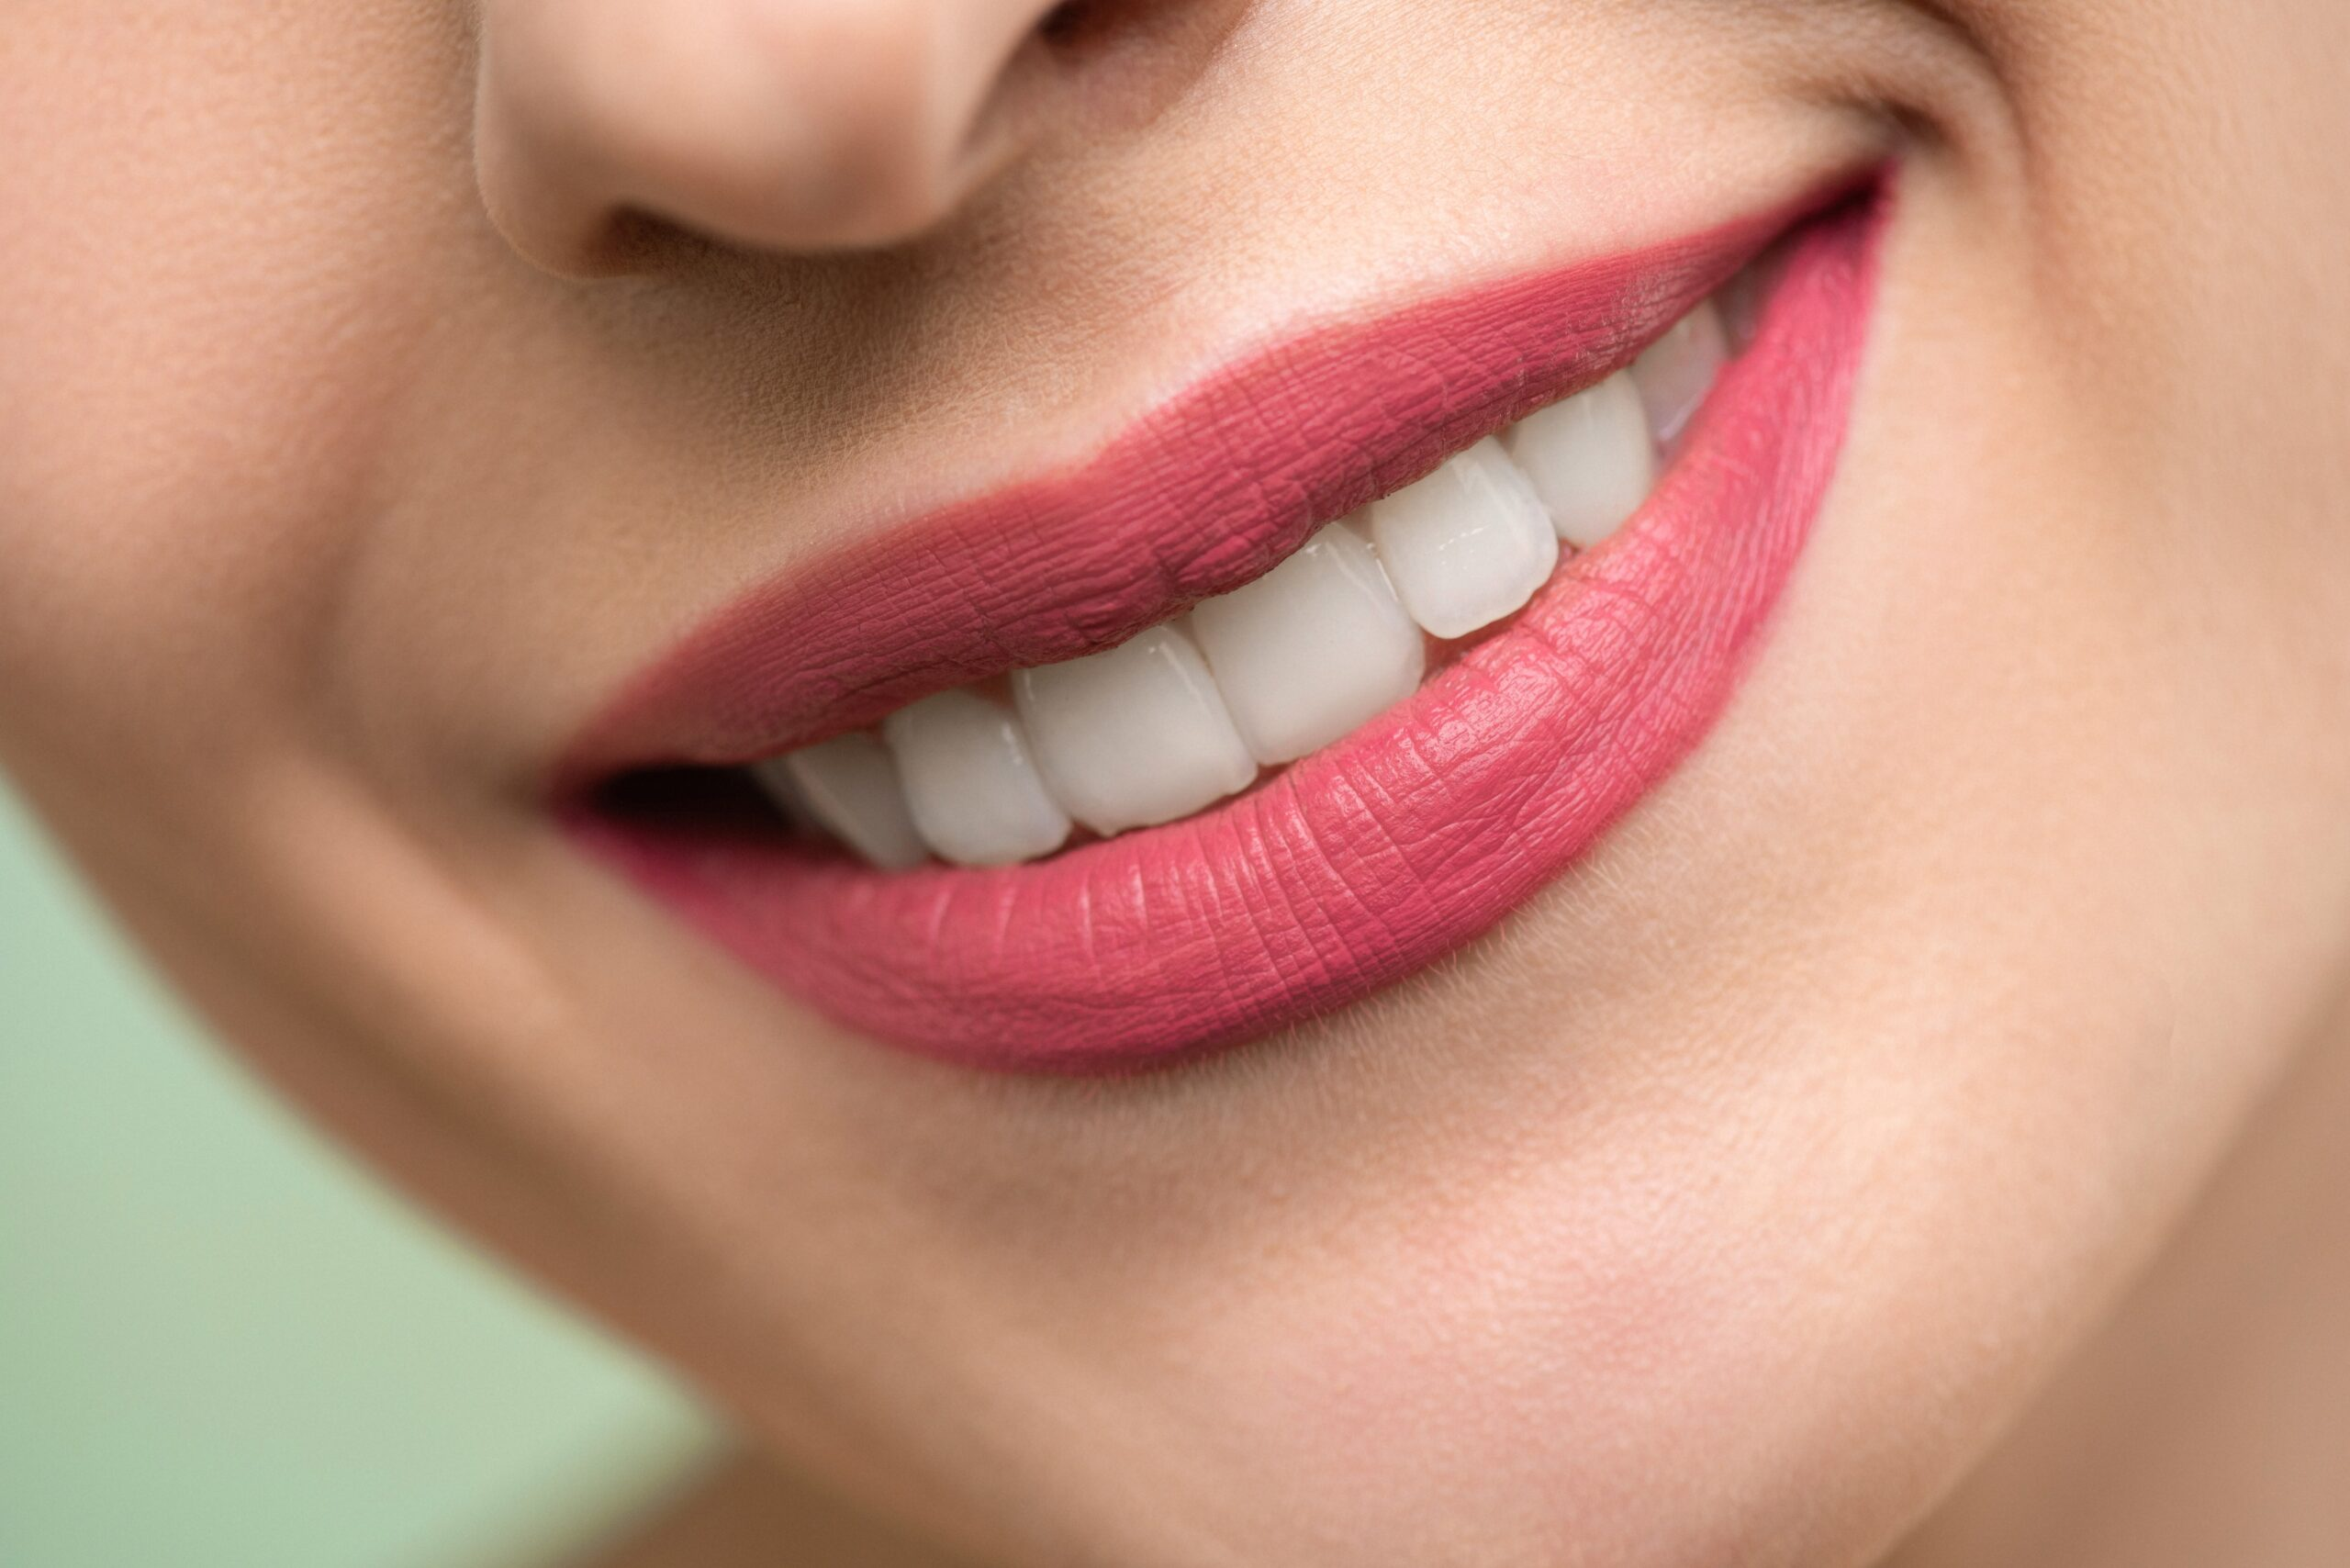 veneers before and after 4